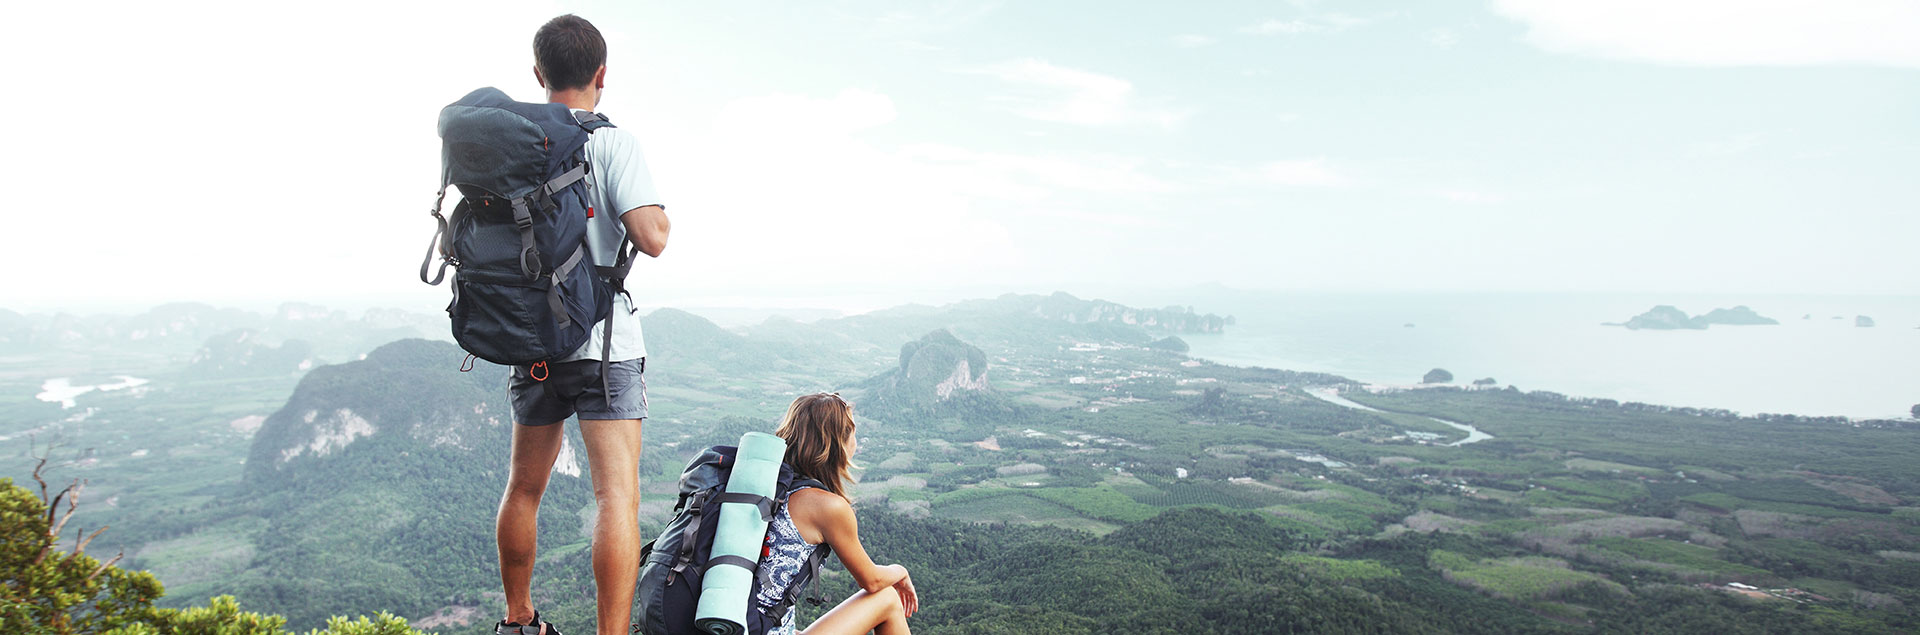 Two students on a mountain overlooking the ocean